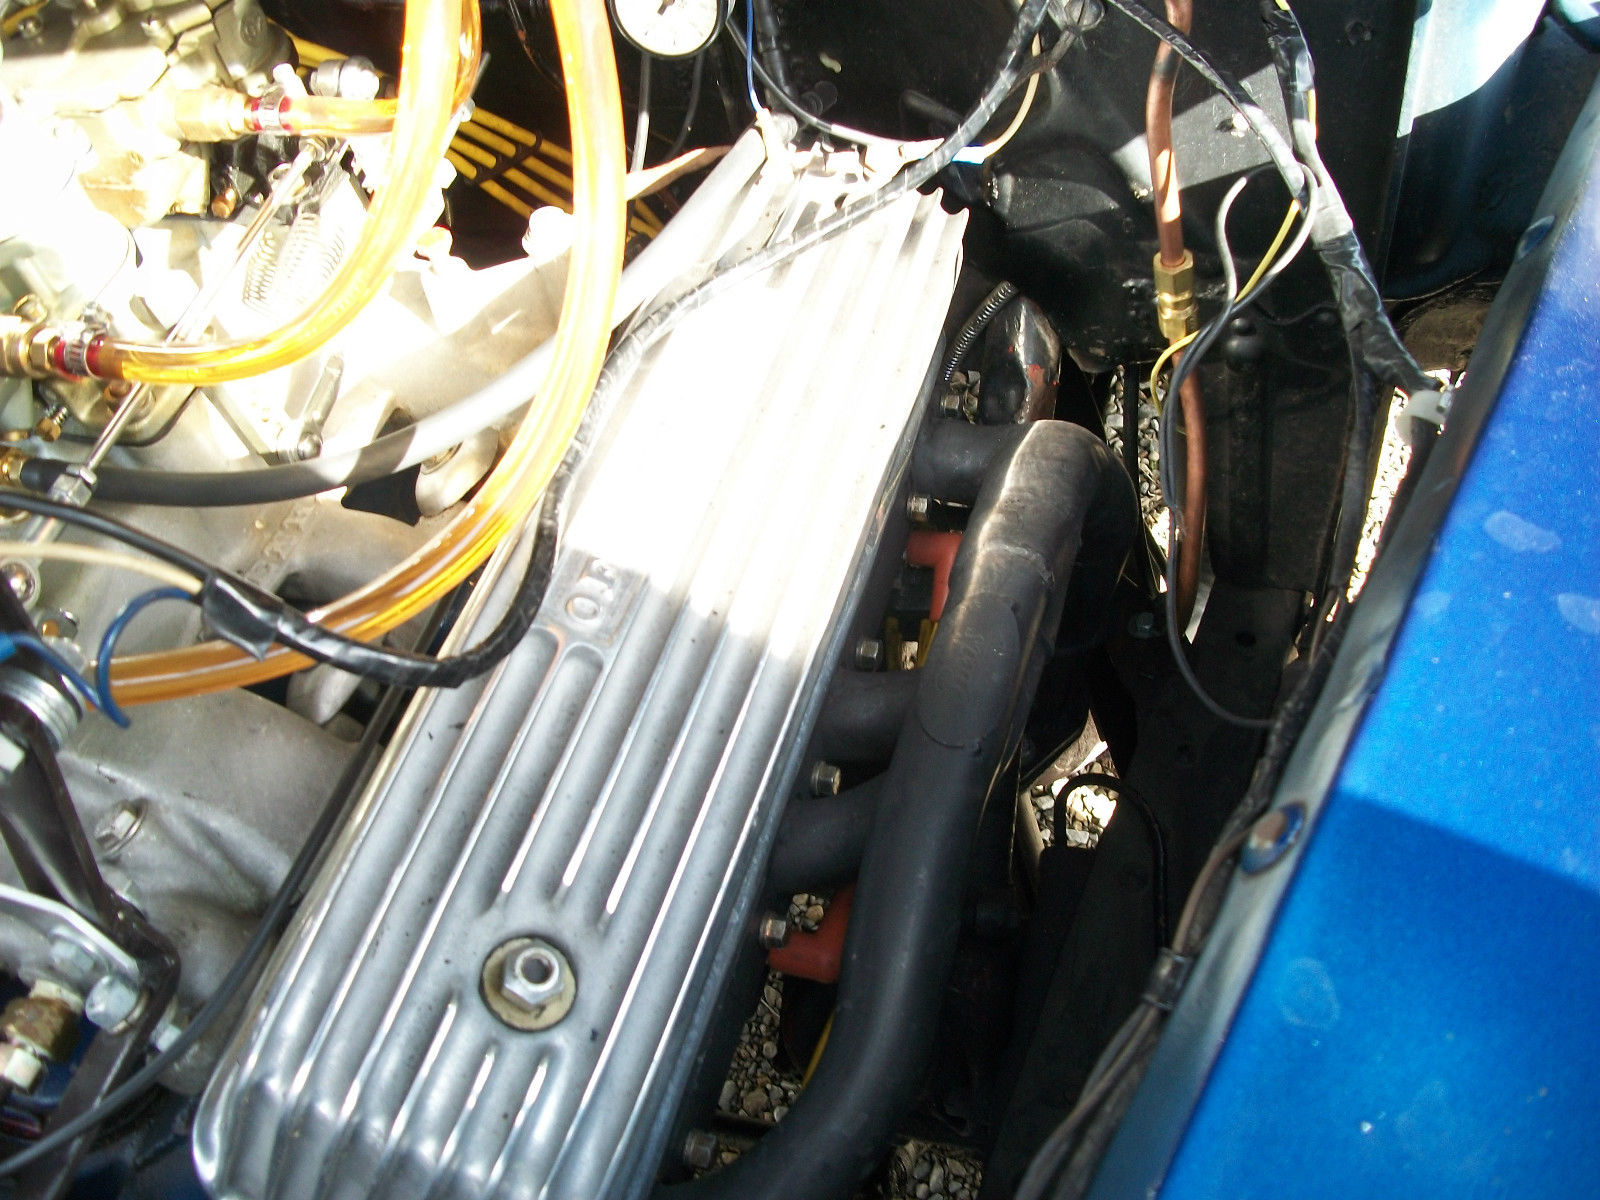 1940 Ford Street Rod Truck Blue Black 8 Cyl 312 Y Block Car Complete Wiring Harness Other Pickups Prevnext